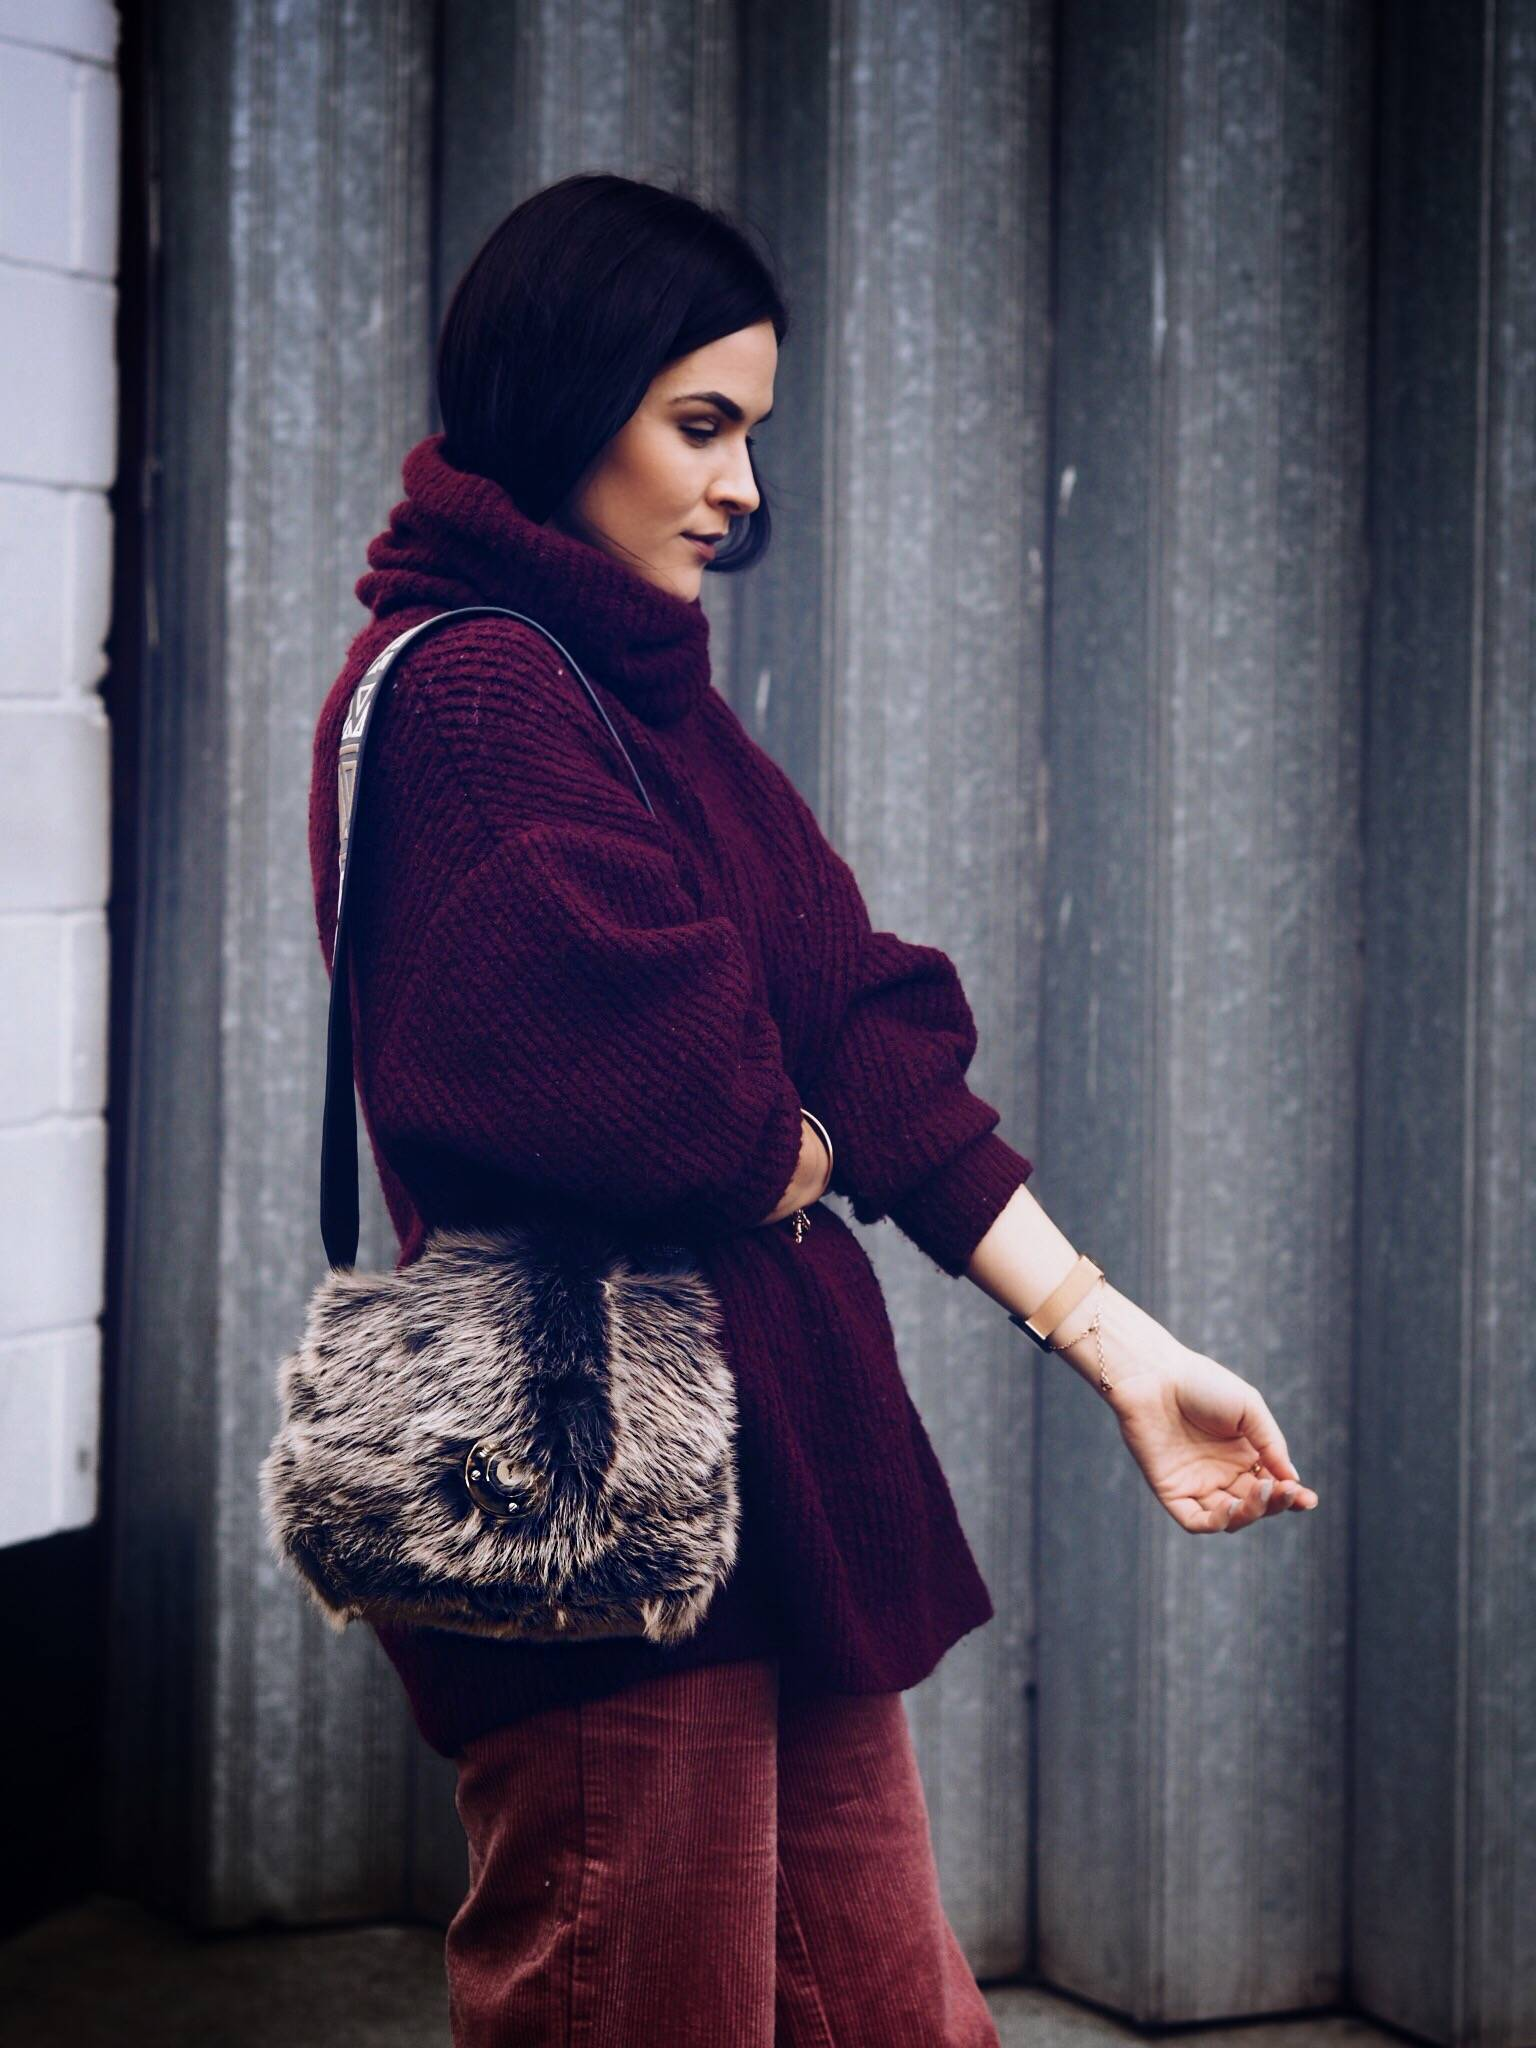 LAFOTKA CORDS AND BURGUNDY KNITWEAR - STREET STYLE WINTER